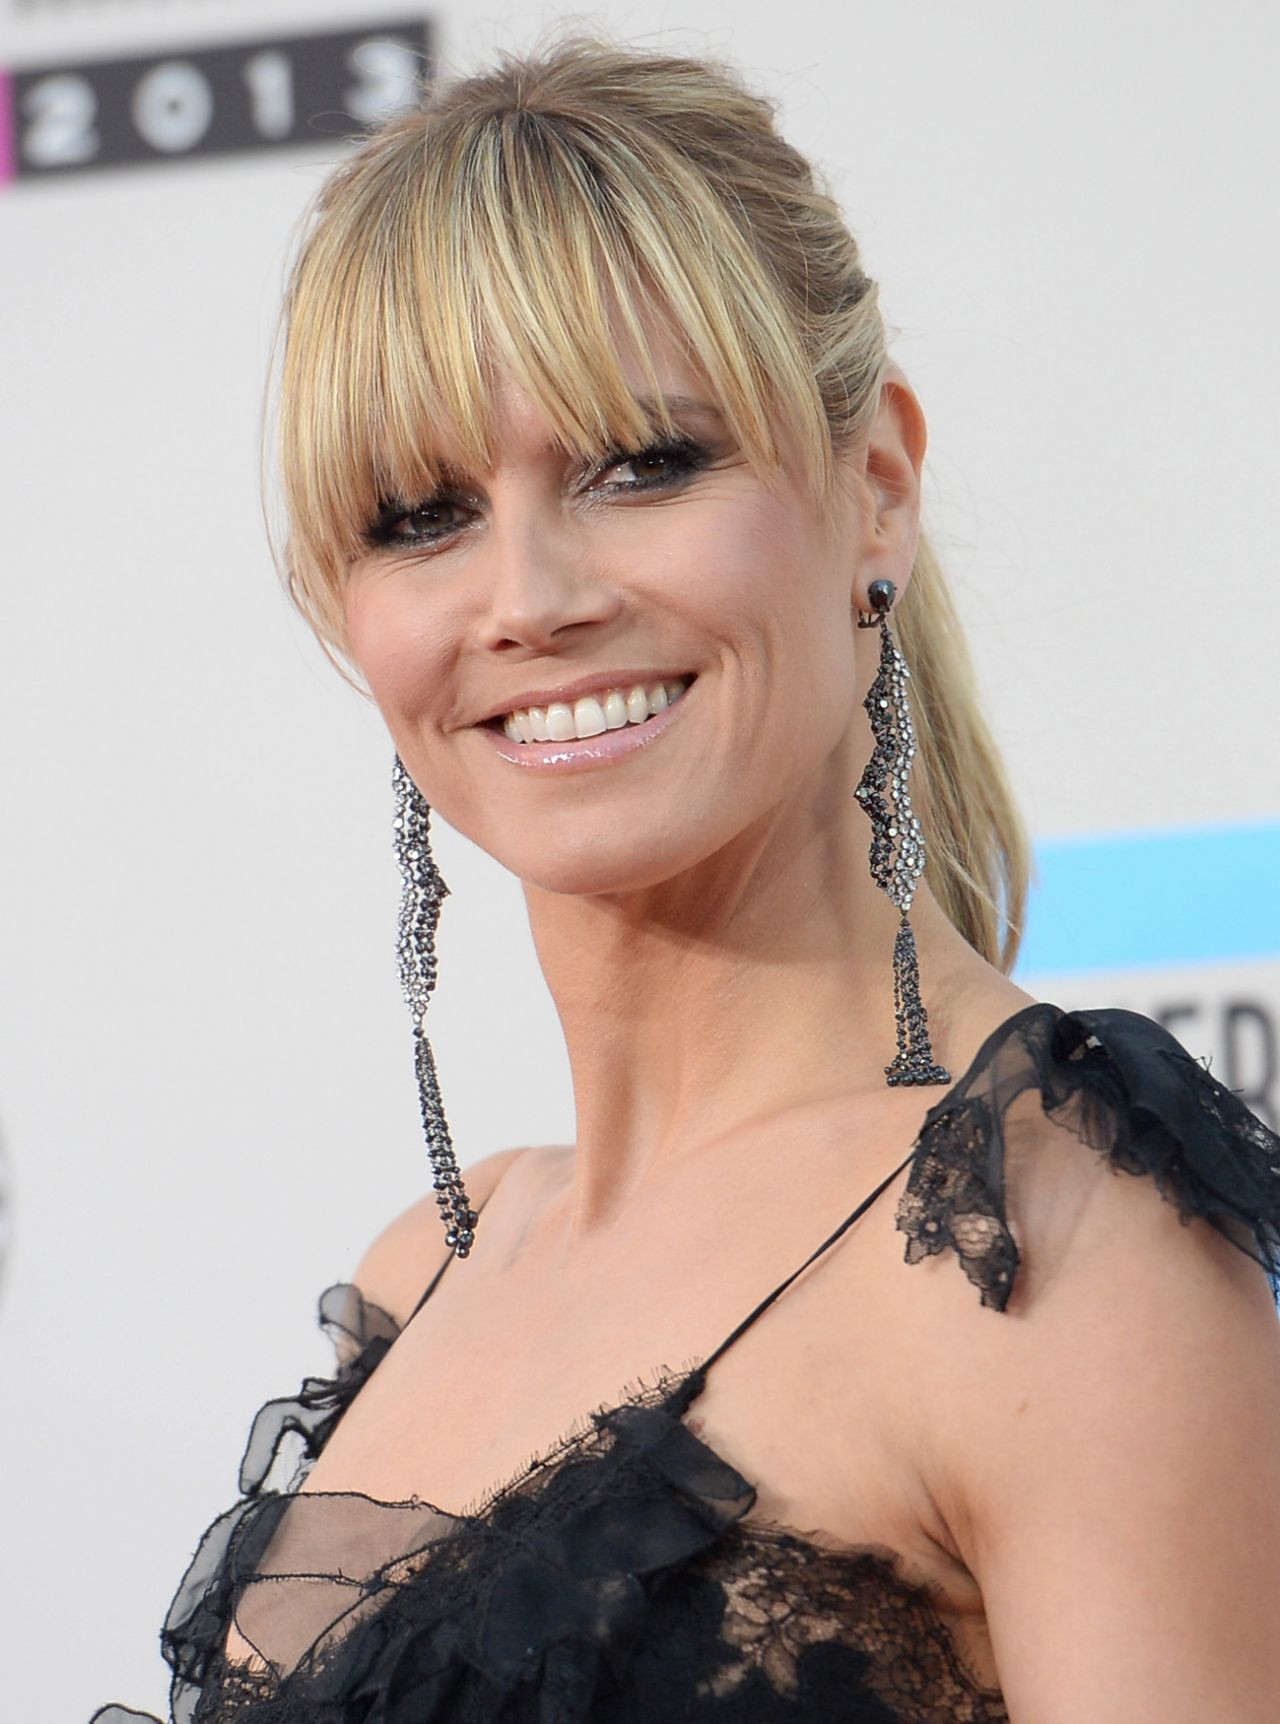 Heidi Klum at 2013 American Music Awards in Los Angeles